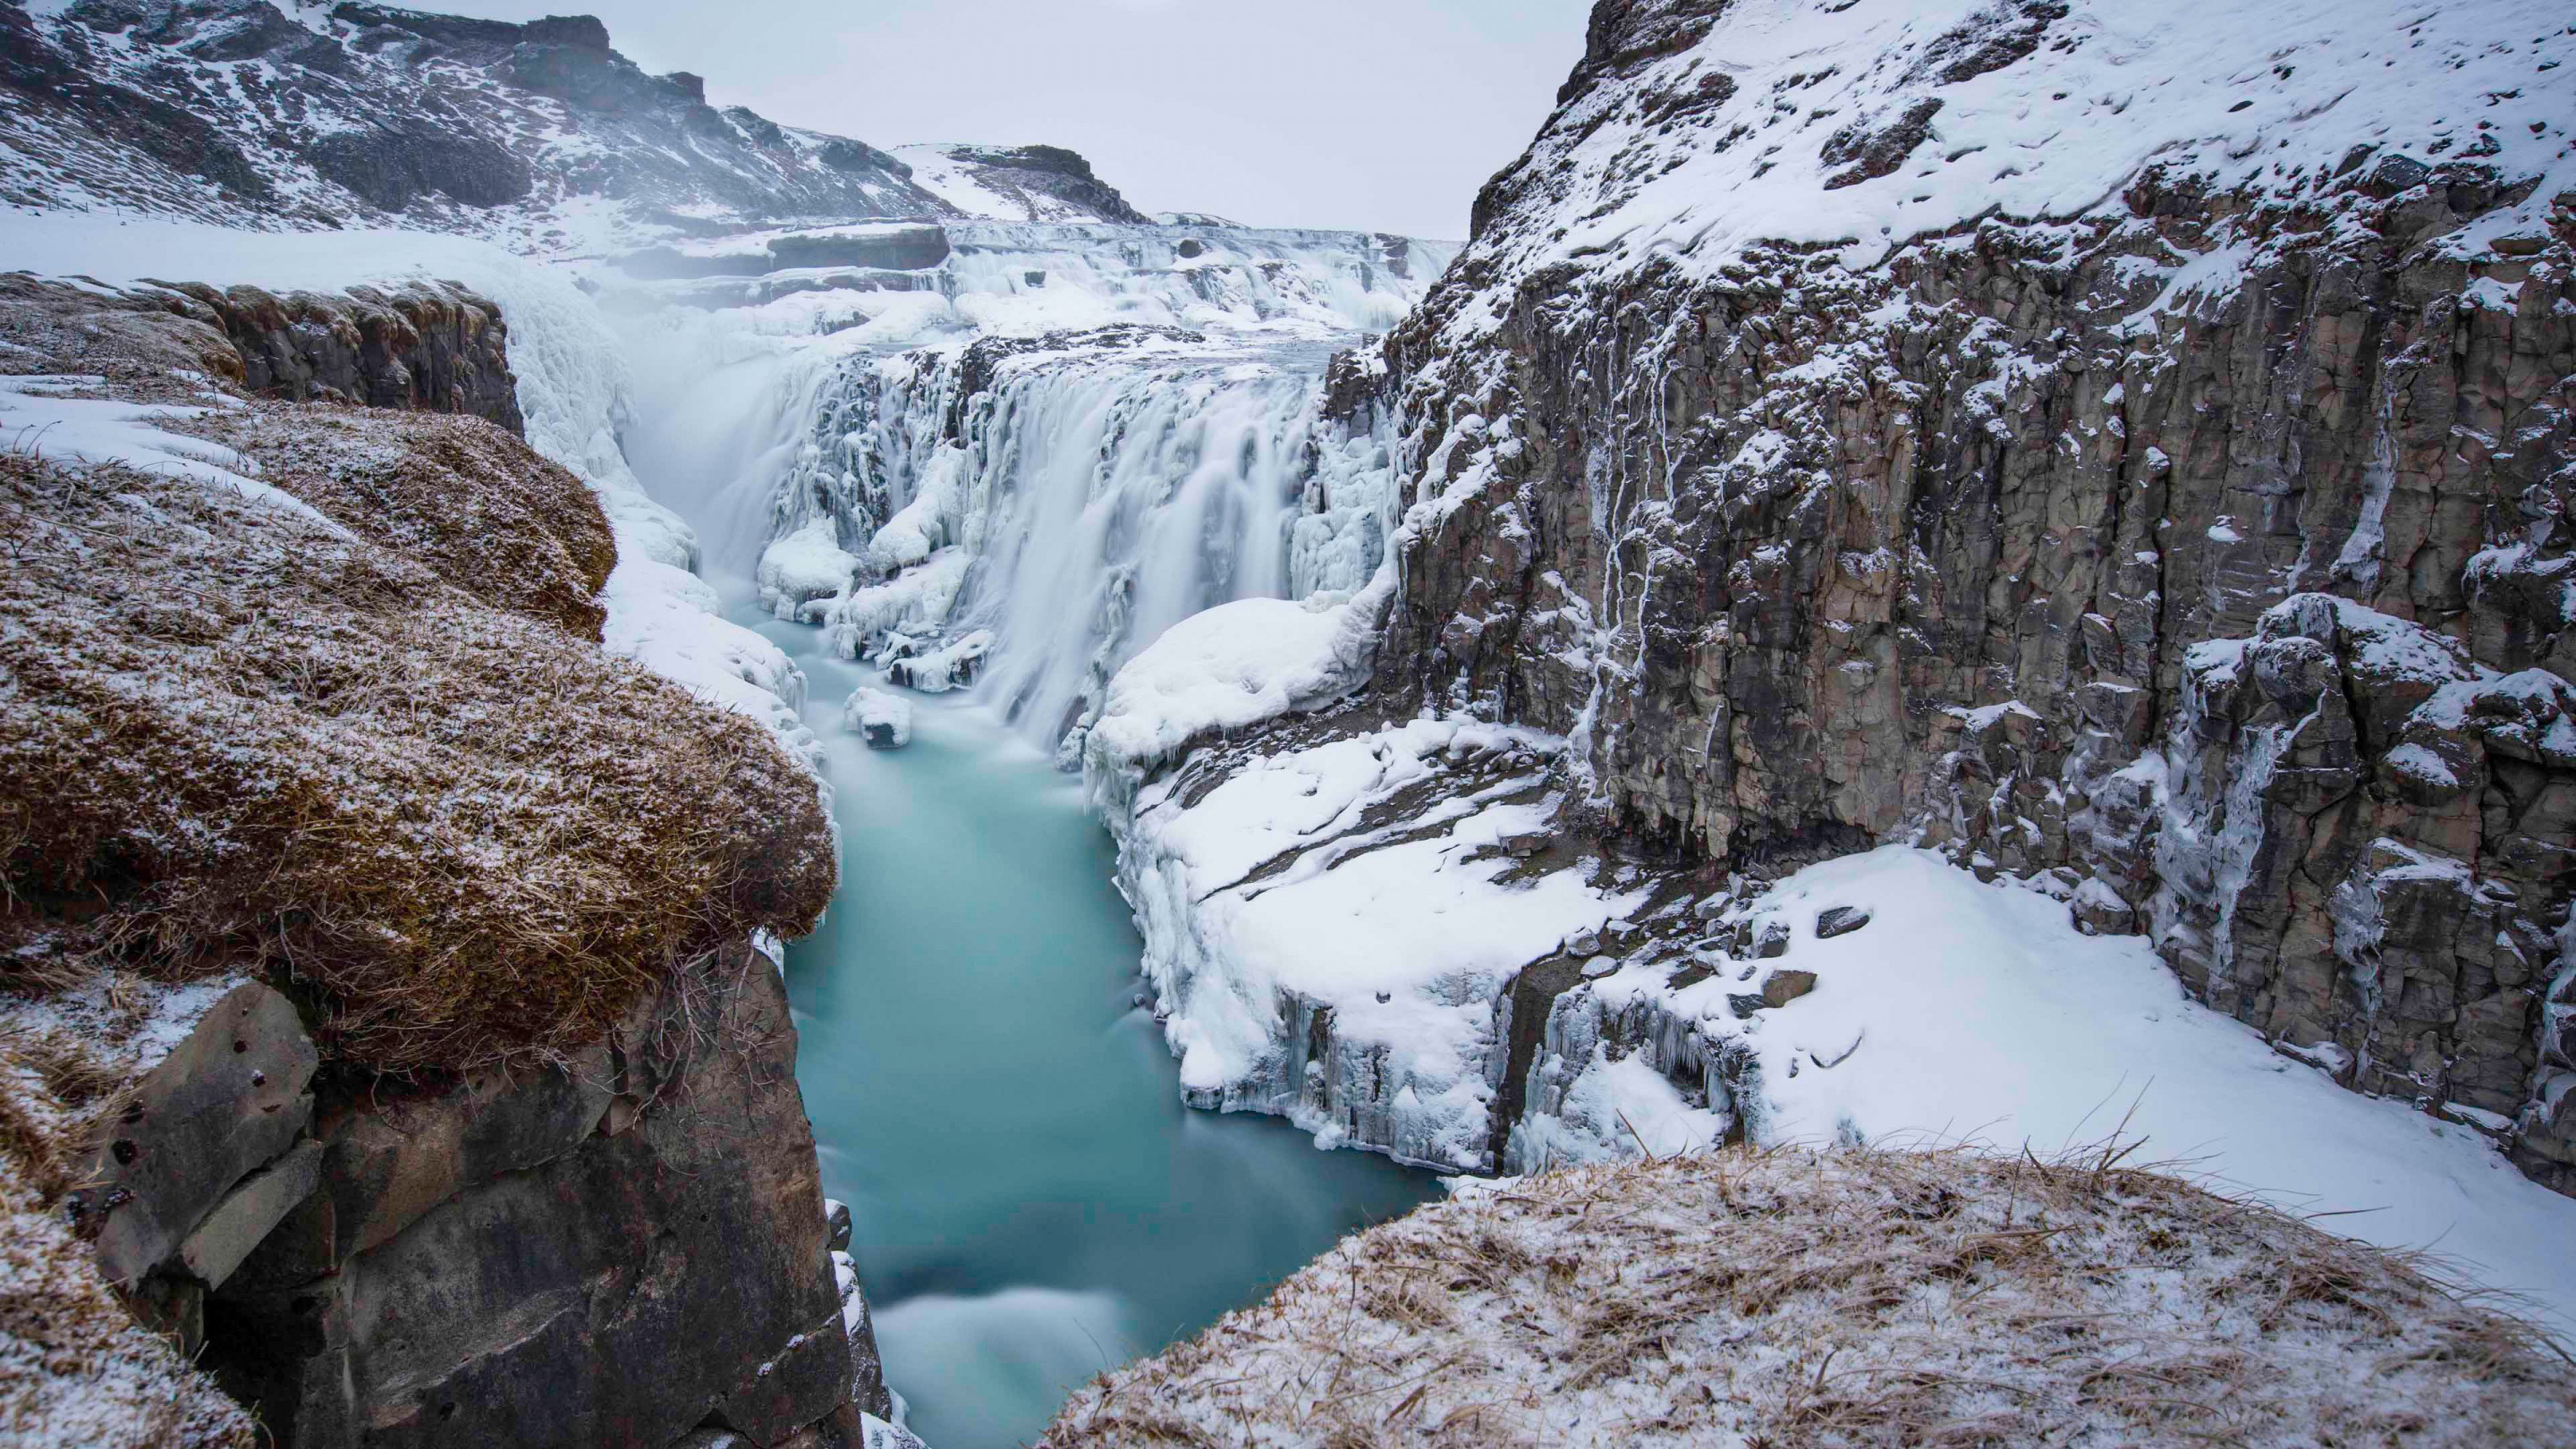 Gullfoss waterfall in Iceland | 2880x1620 wallpaper